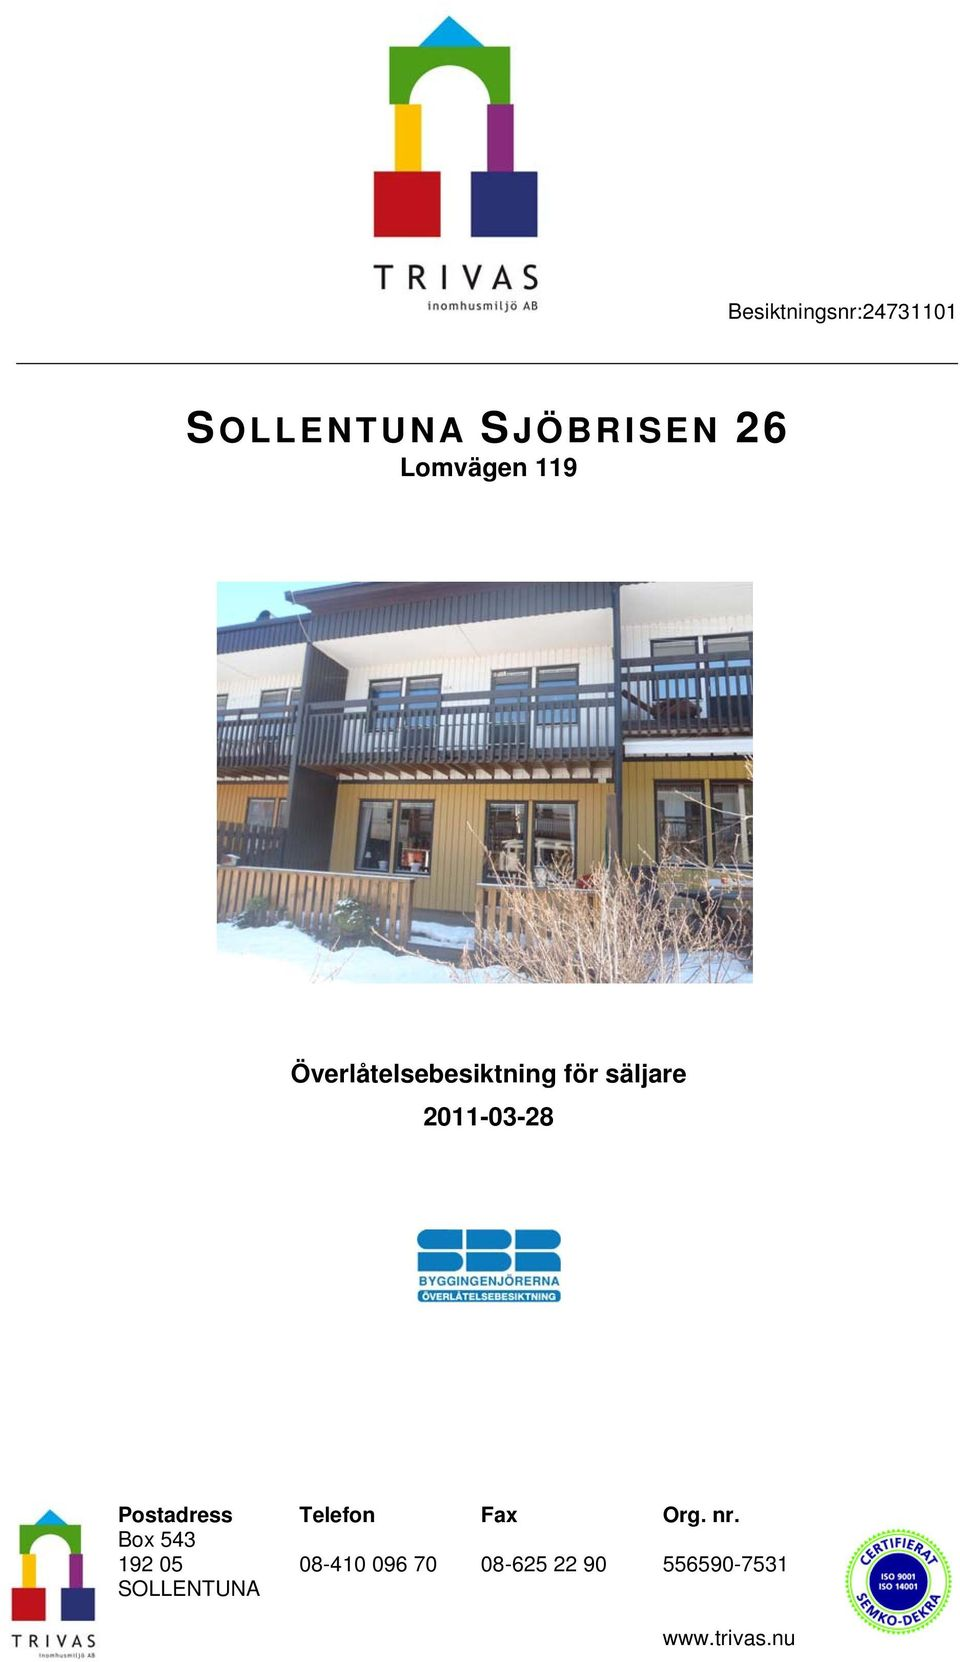 2011-03-28 Postadress Box 543 192 05 SOLLENTUNA